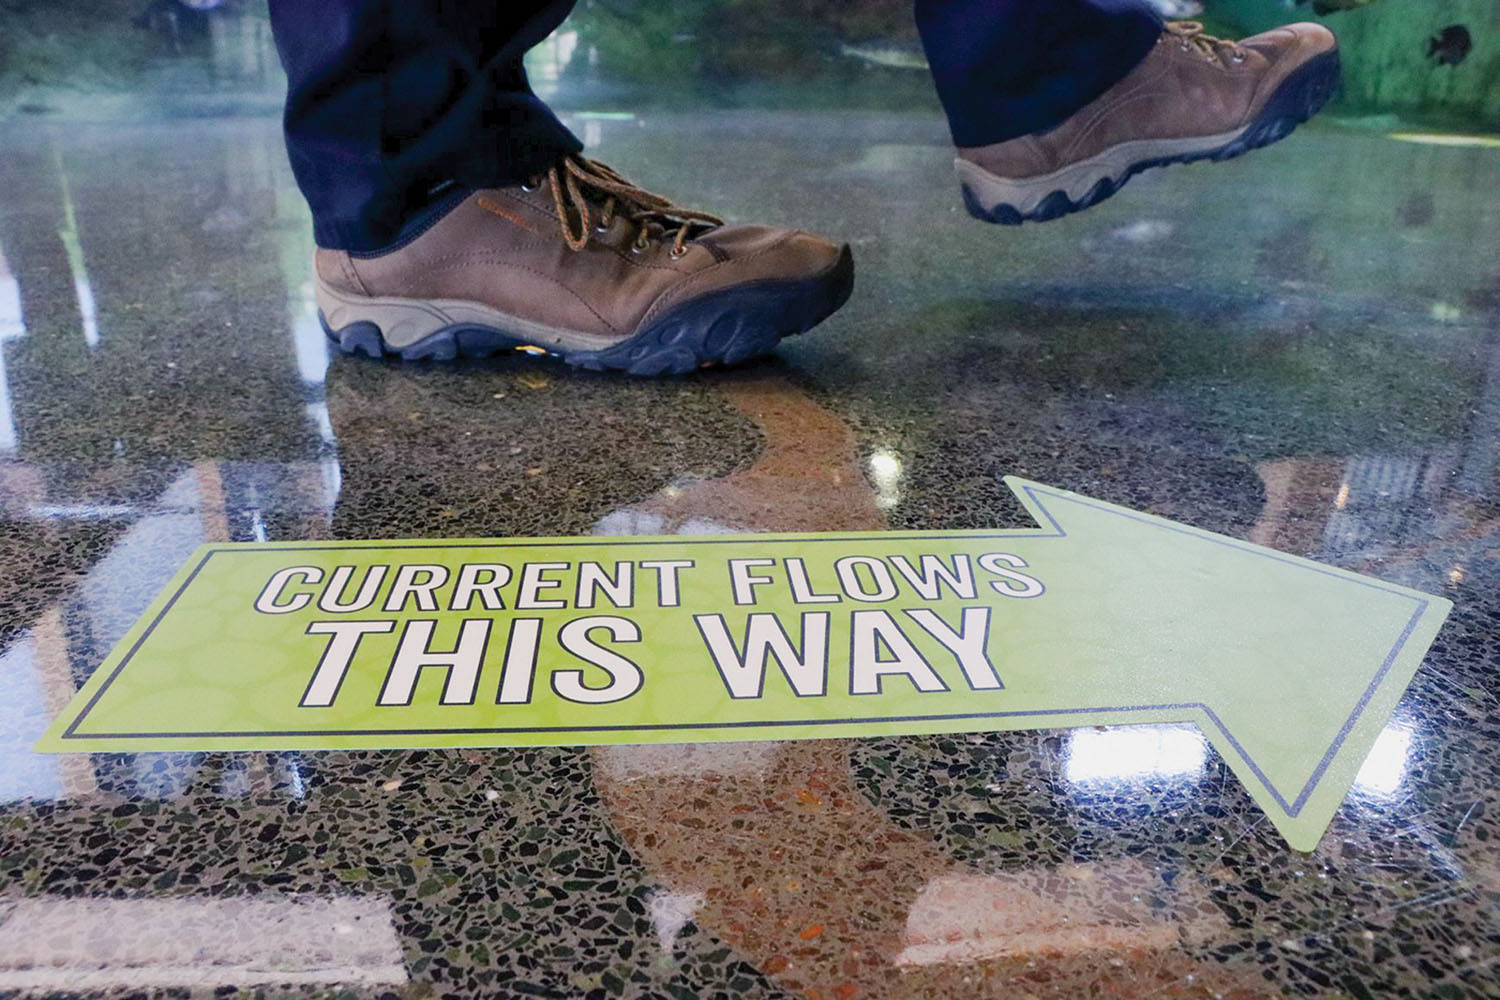 Directional arrows guide the footsteps of a visitor at the National Mississippi River Museum and Aquarium in Dubuque, Iowa. (Photo courtesy of National Mississippi River Museum and Aquarium)